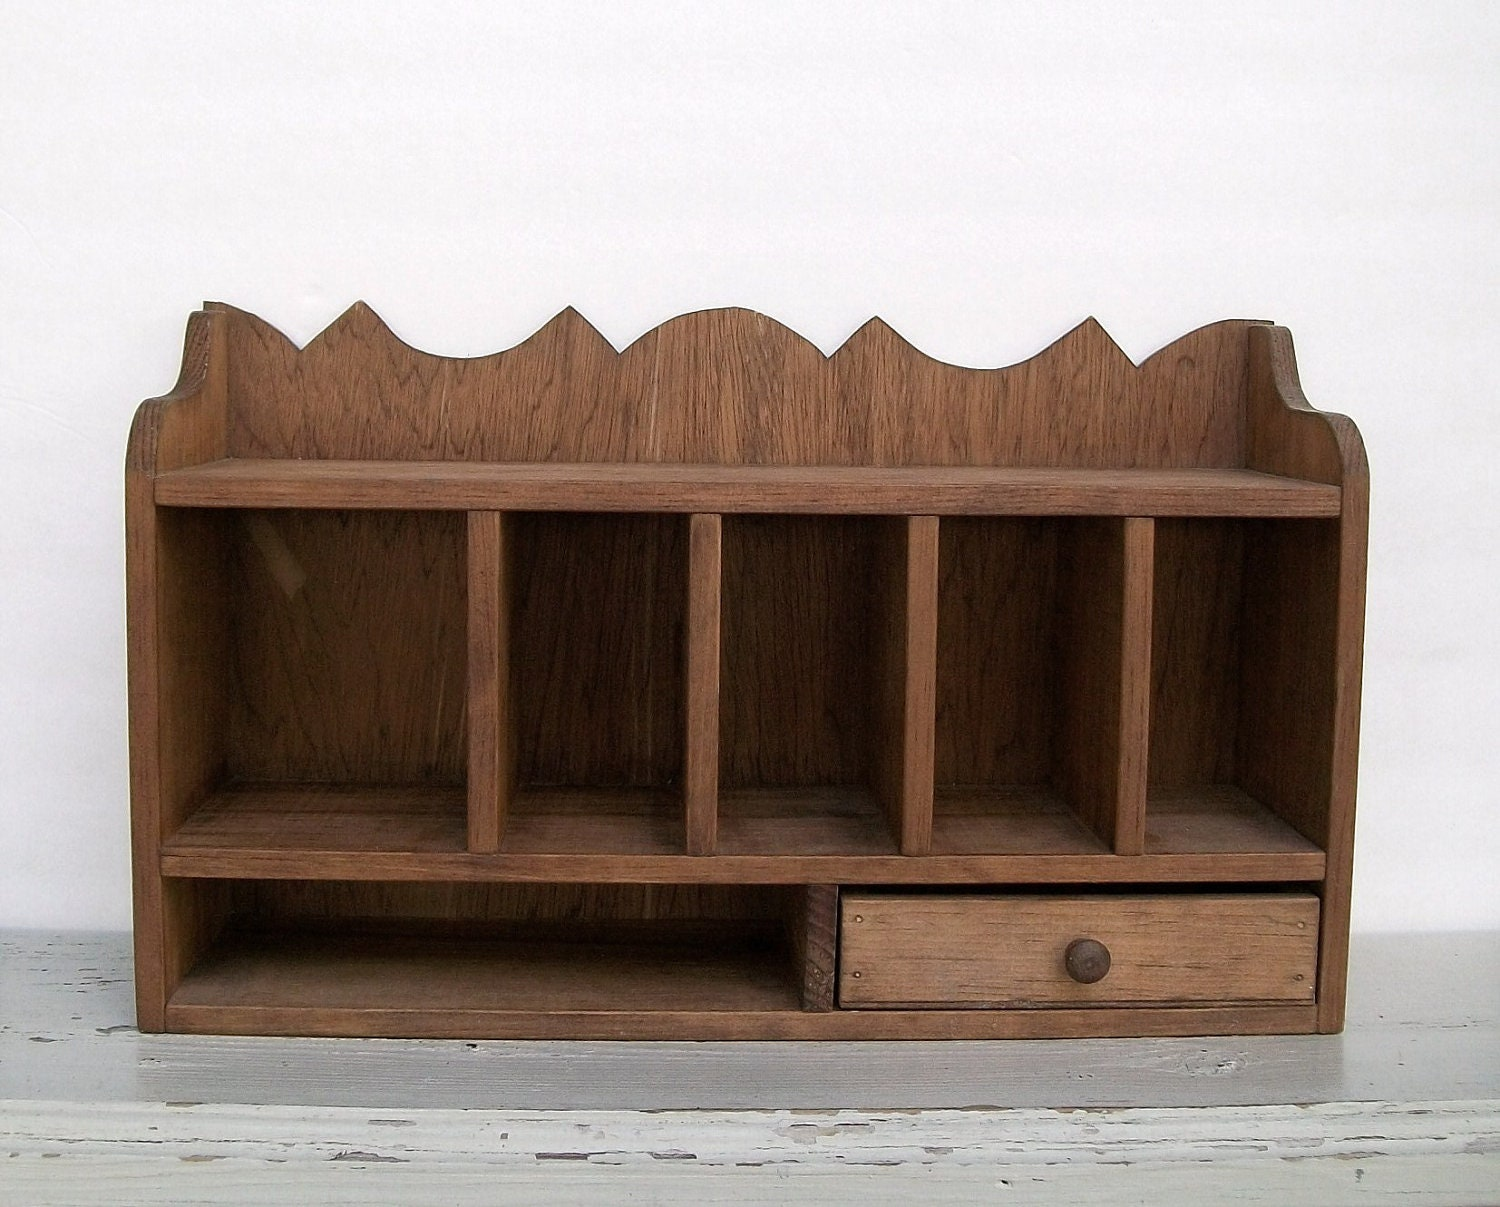 Very Impressive portraiture of Vintage Rustic Wooden Desktop Display Shelf Counter Storage with #2B1A0E color and 1500x1207 pixels